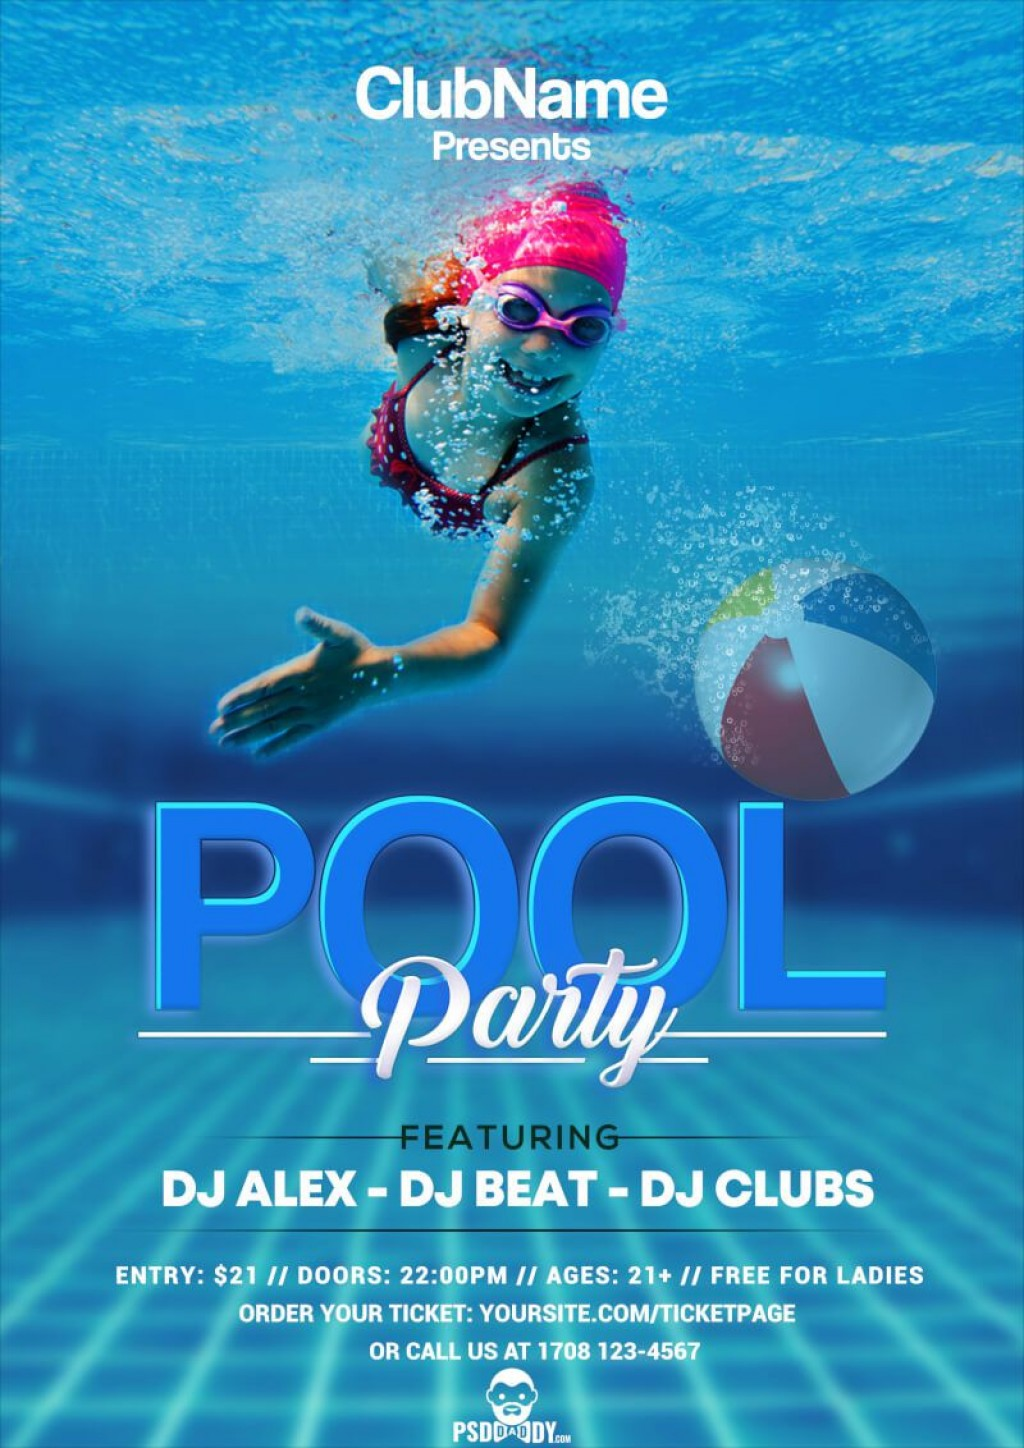 008 Imposing Free Pool Party Flyer Template Psd Example  PhotoshopLarge